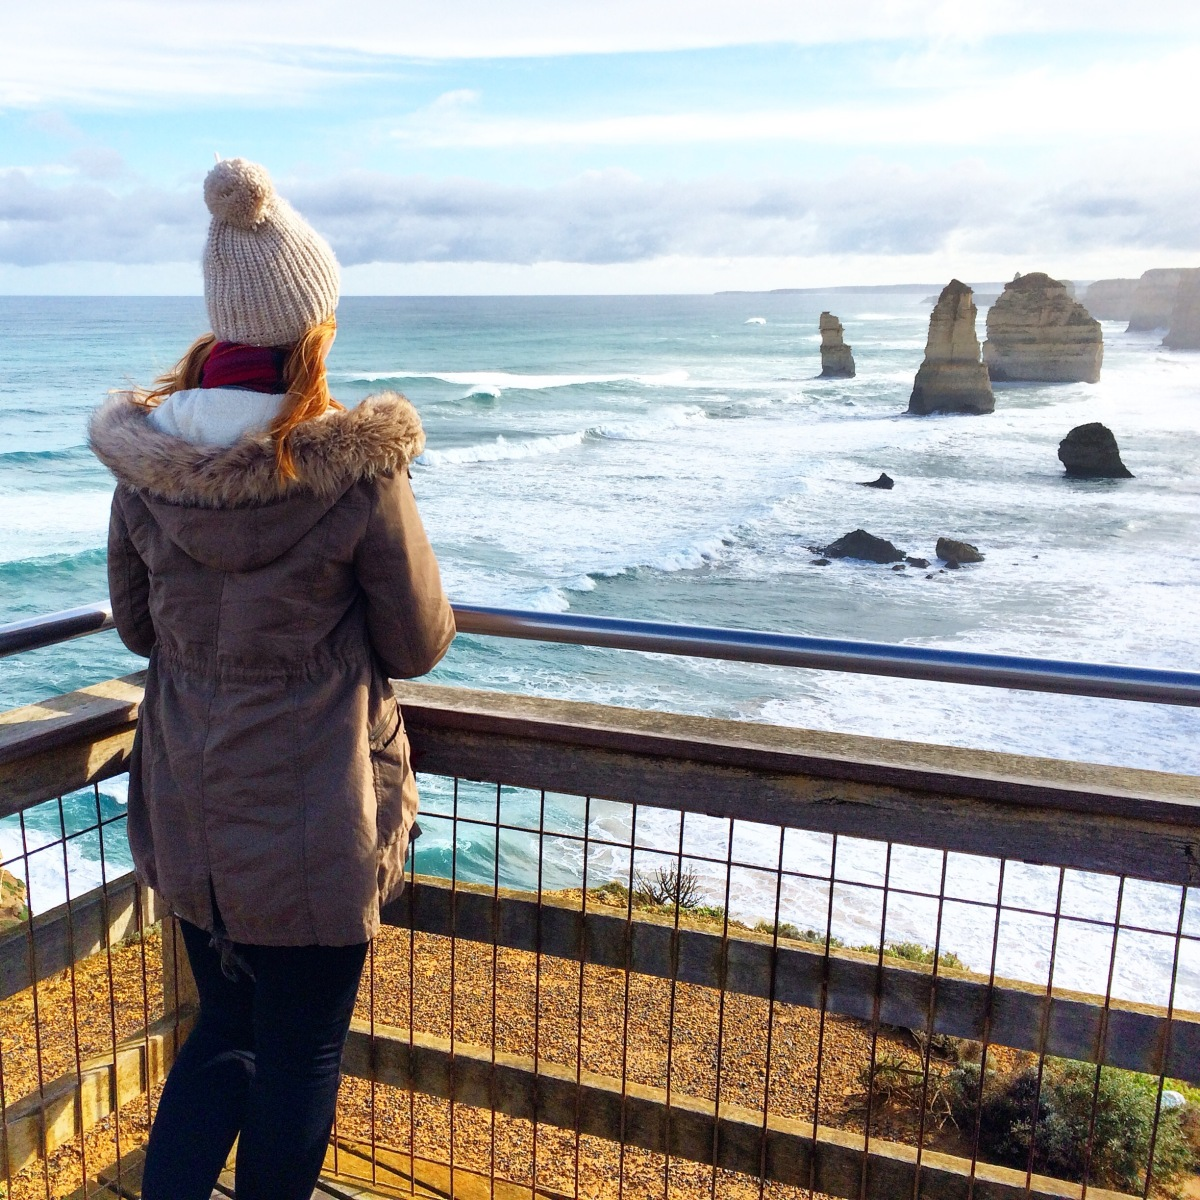 One day exploring the Great Ocean Road